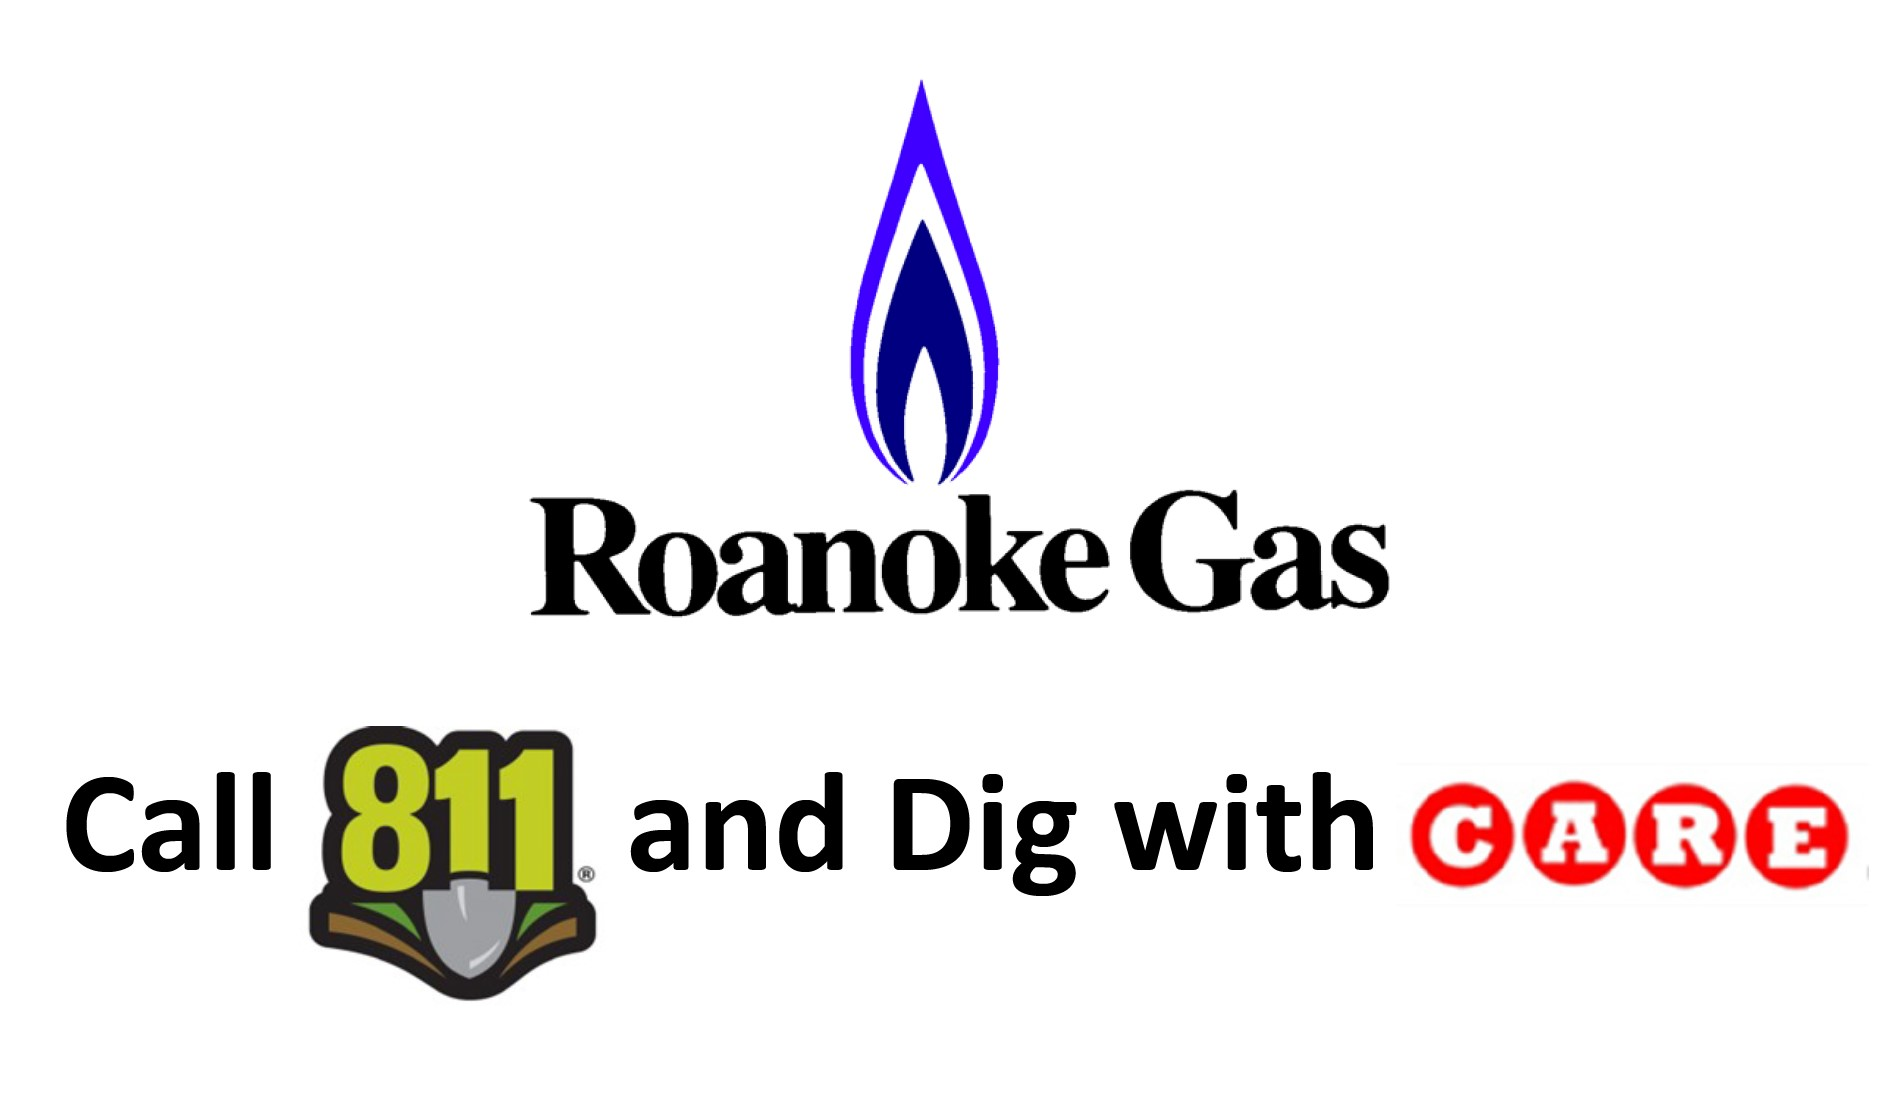 Roanoke Gas Logo